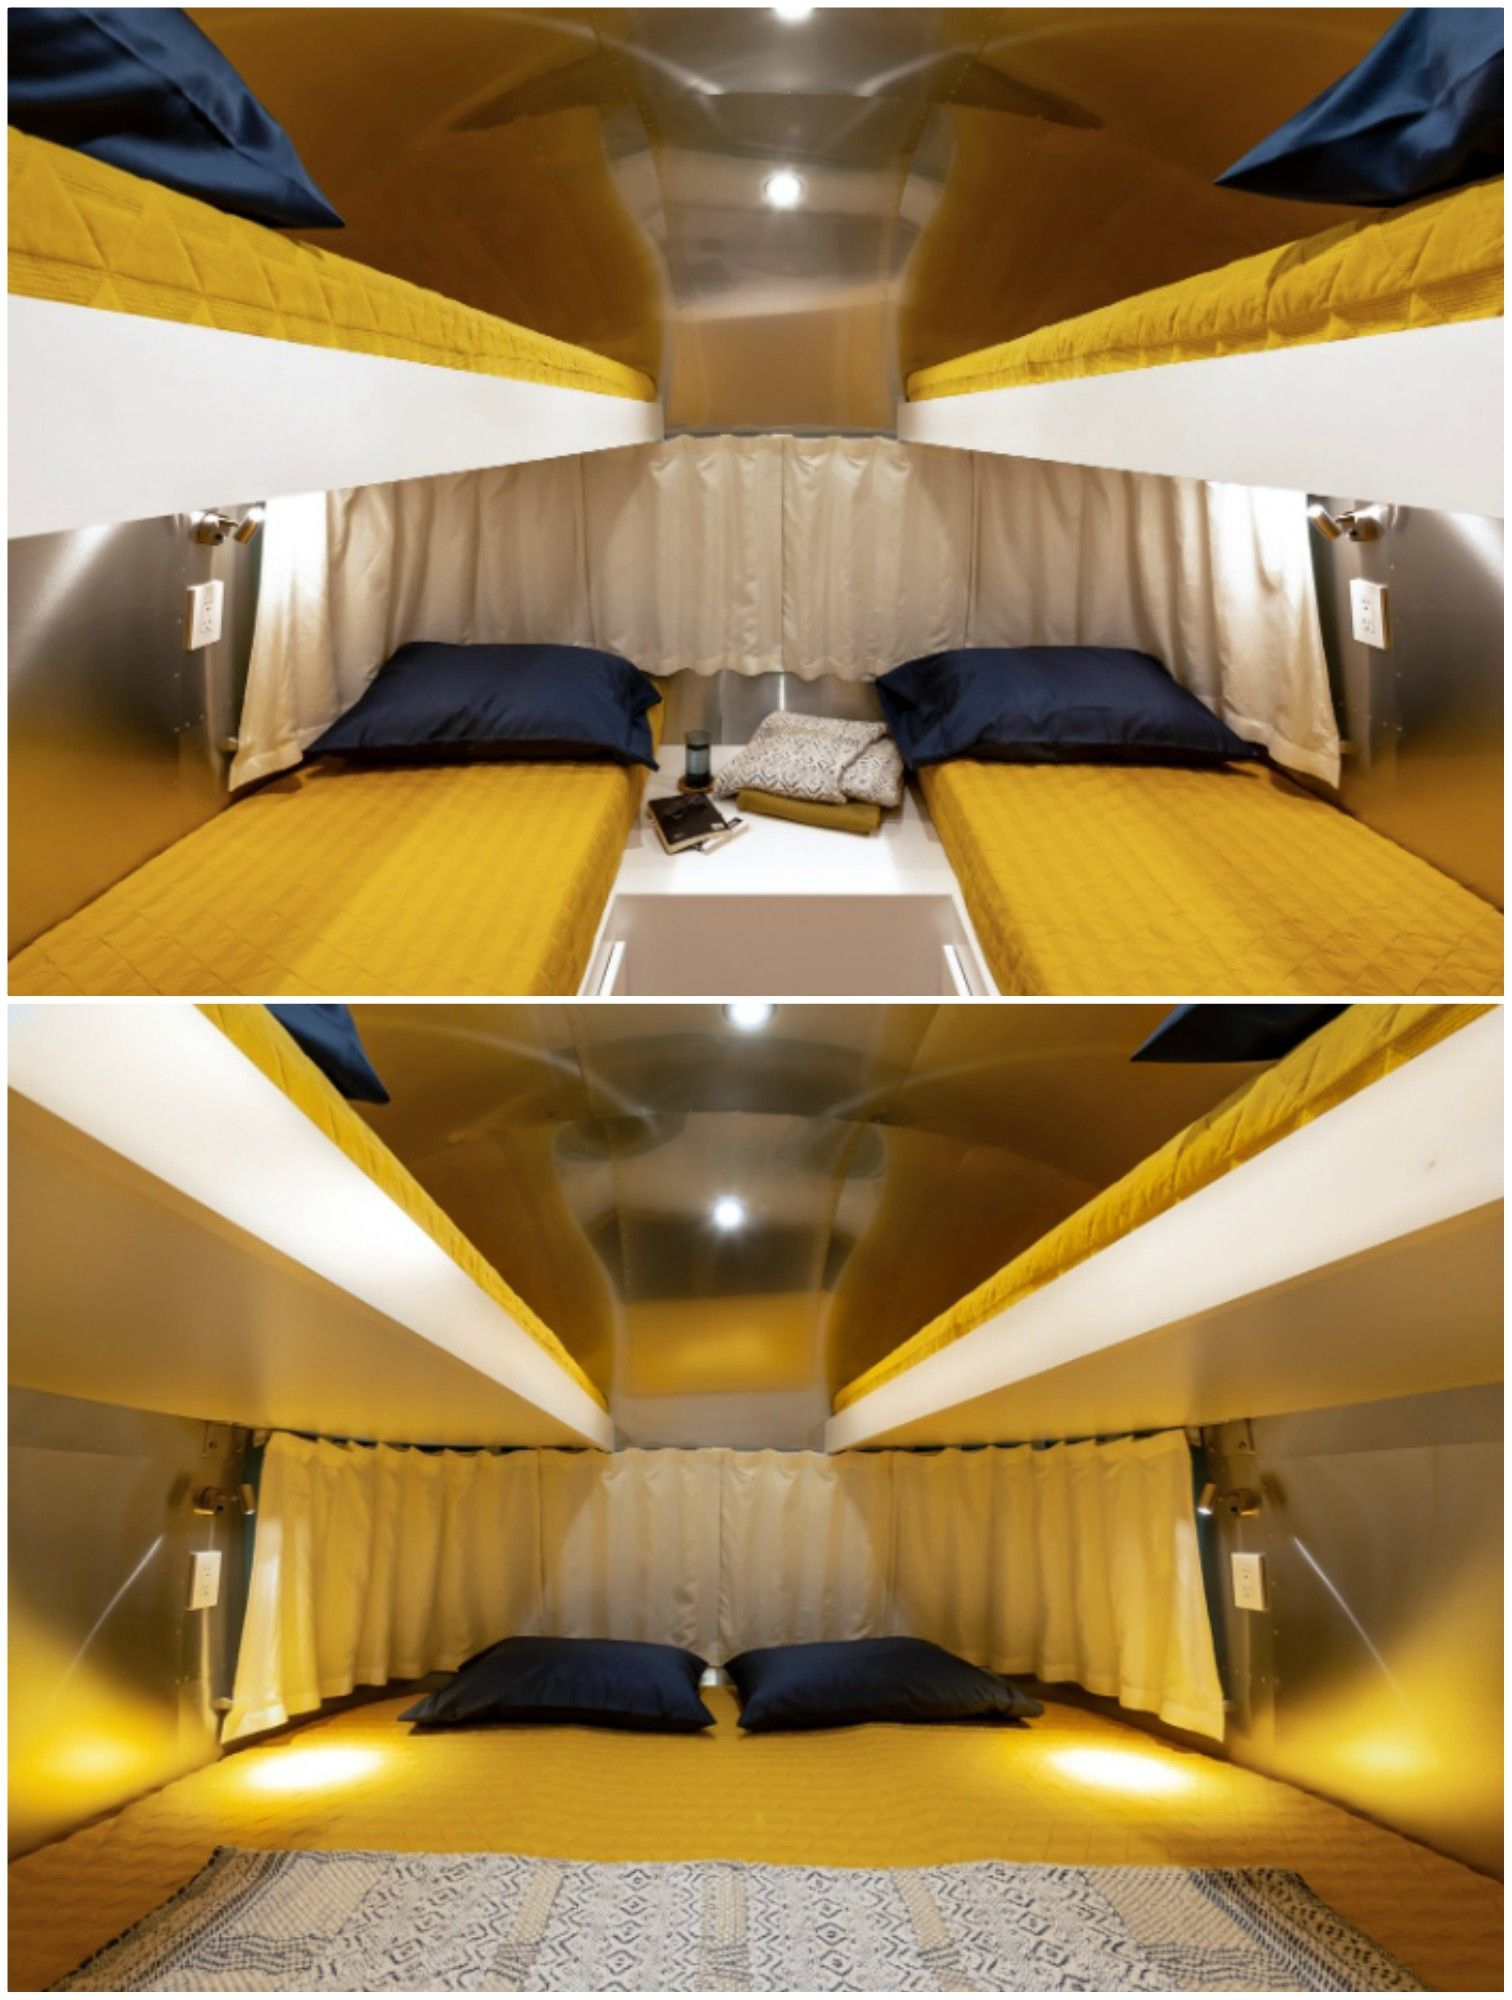 airstream - Customized Airstream camper fits seven with room to spare for pop-up bar and entertainment area